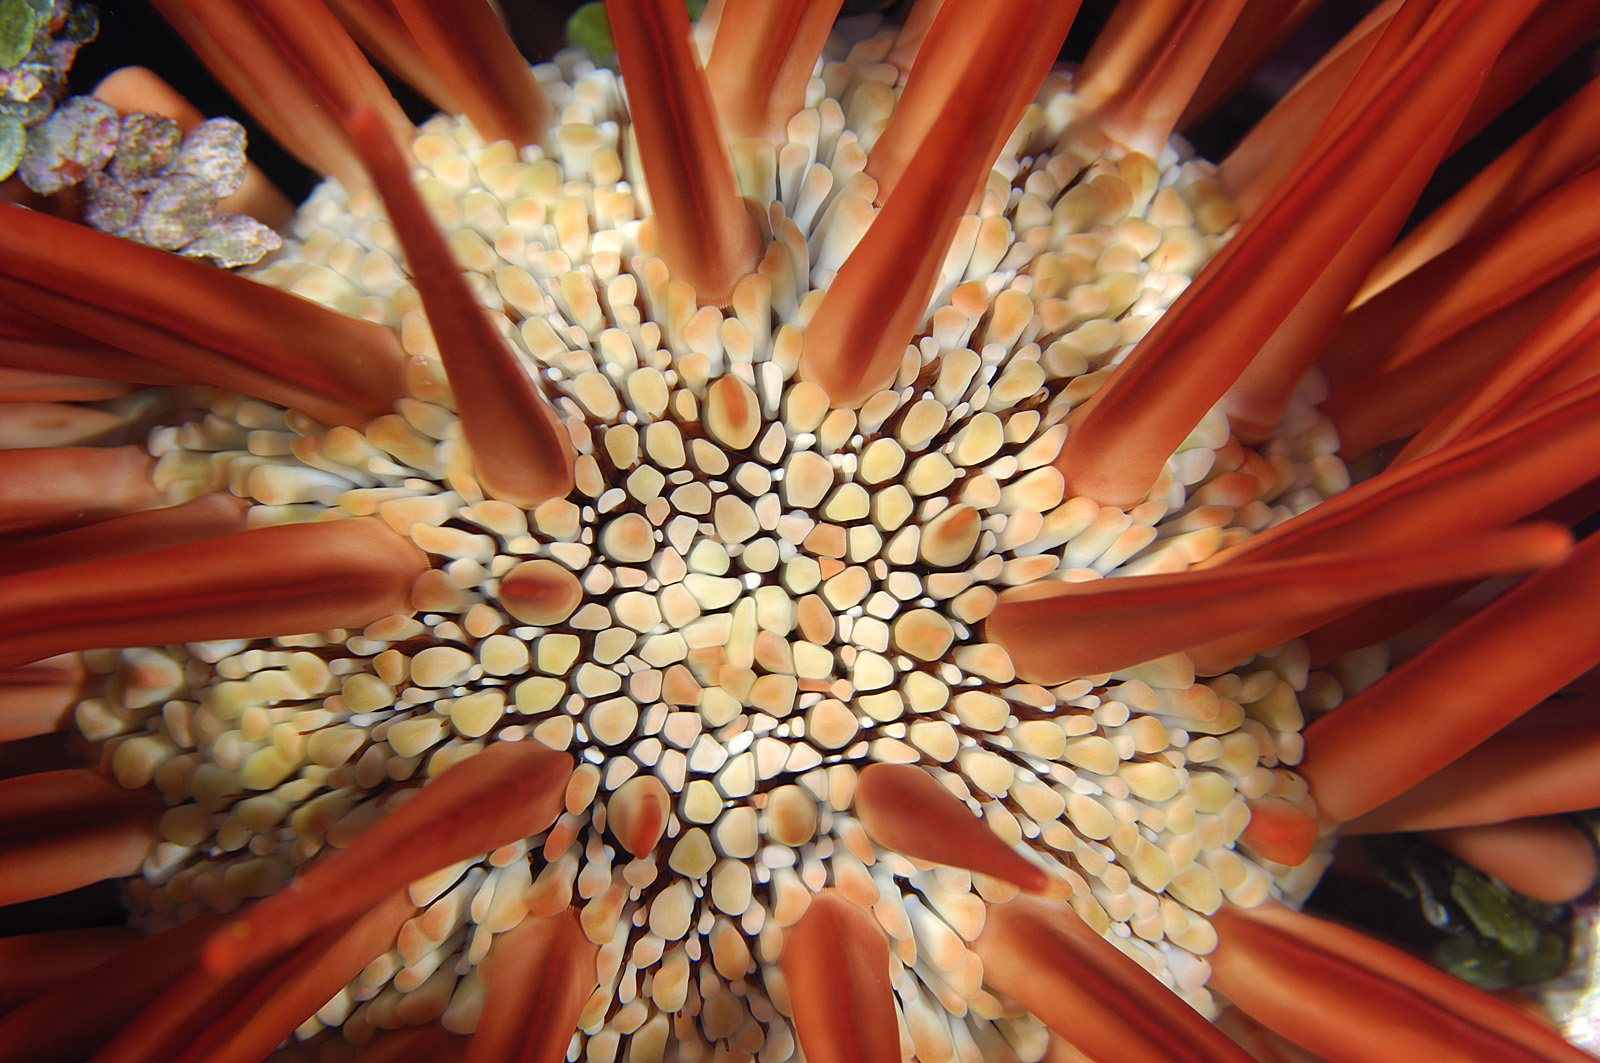 Pencil Urchin - Pencil-Spined Urchin, Kingman Reef, 2007